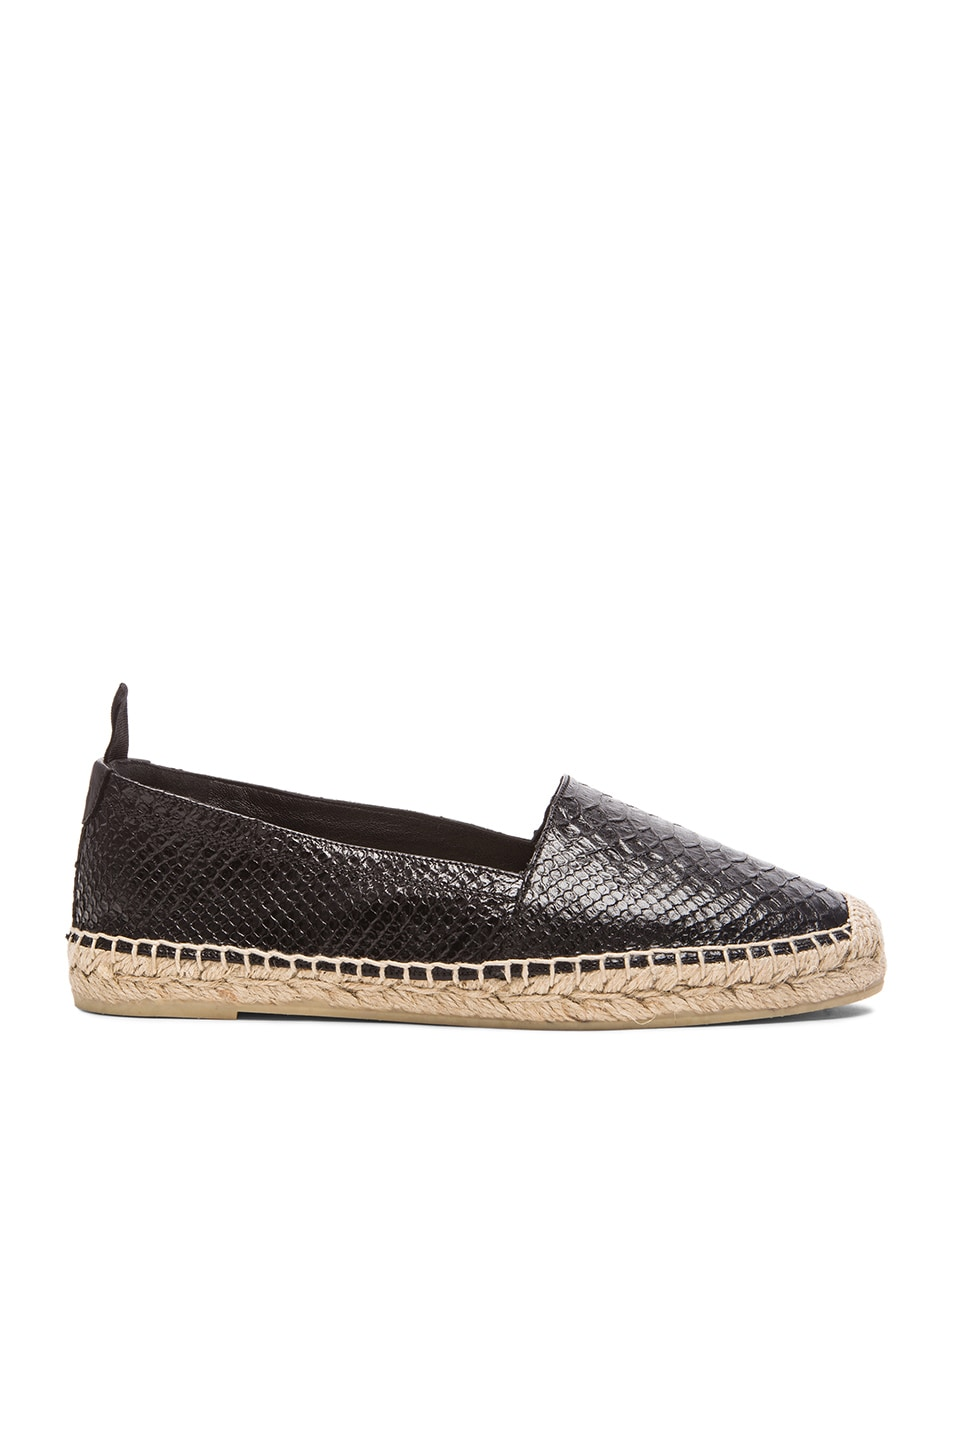 7a317b4b8 Image 1 of Saint Laurent Python Embossed Leather Espadrilles in Black